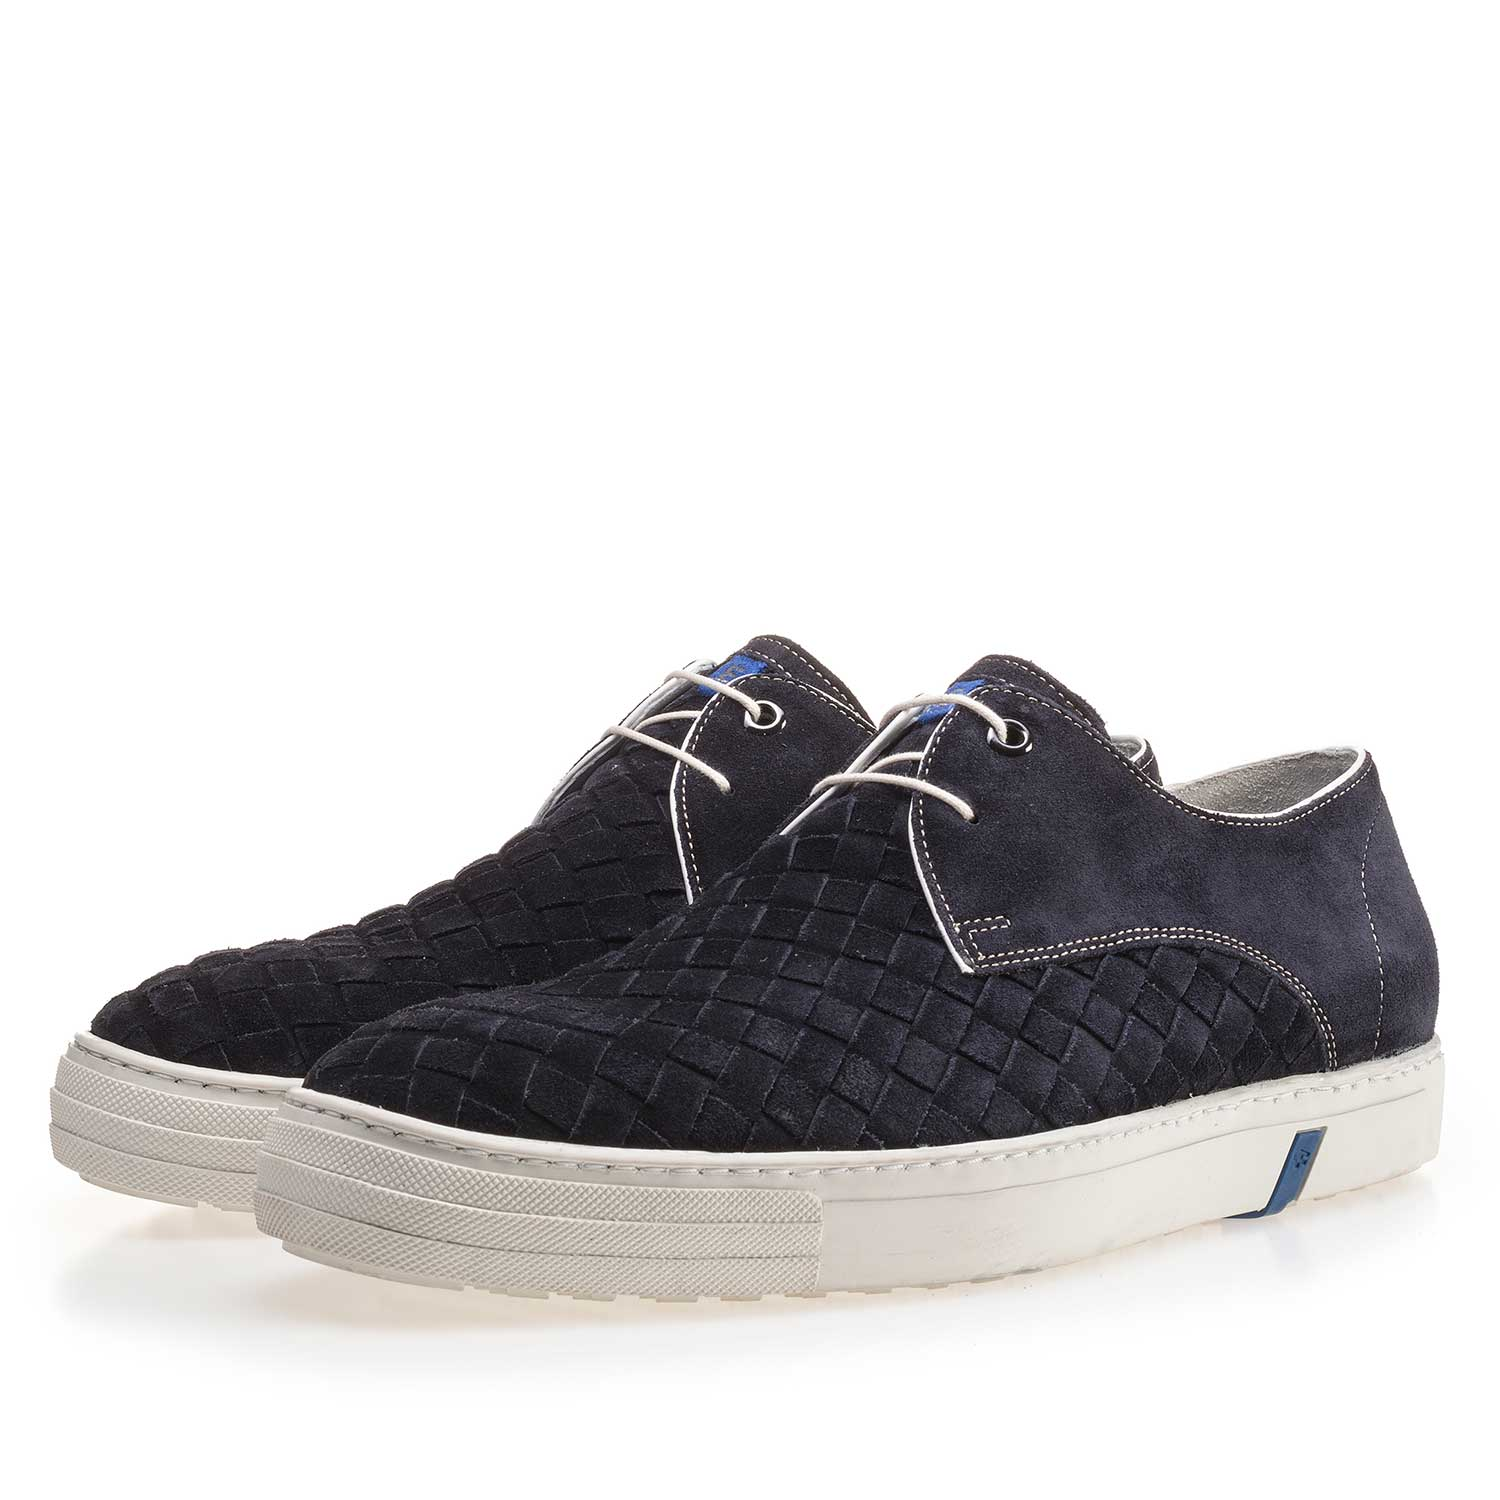 14451/04 - Dark blue lace shoe made of braided leather